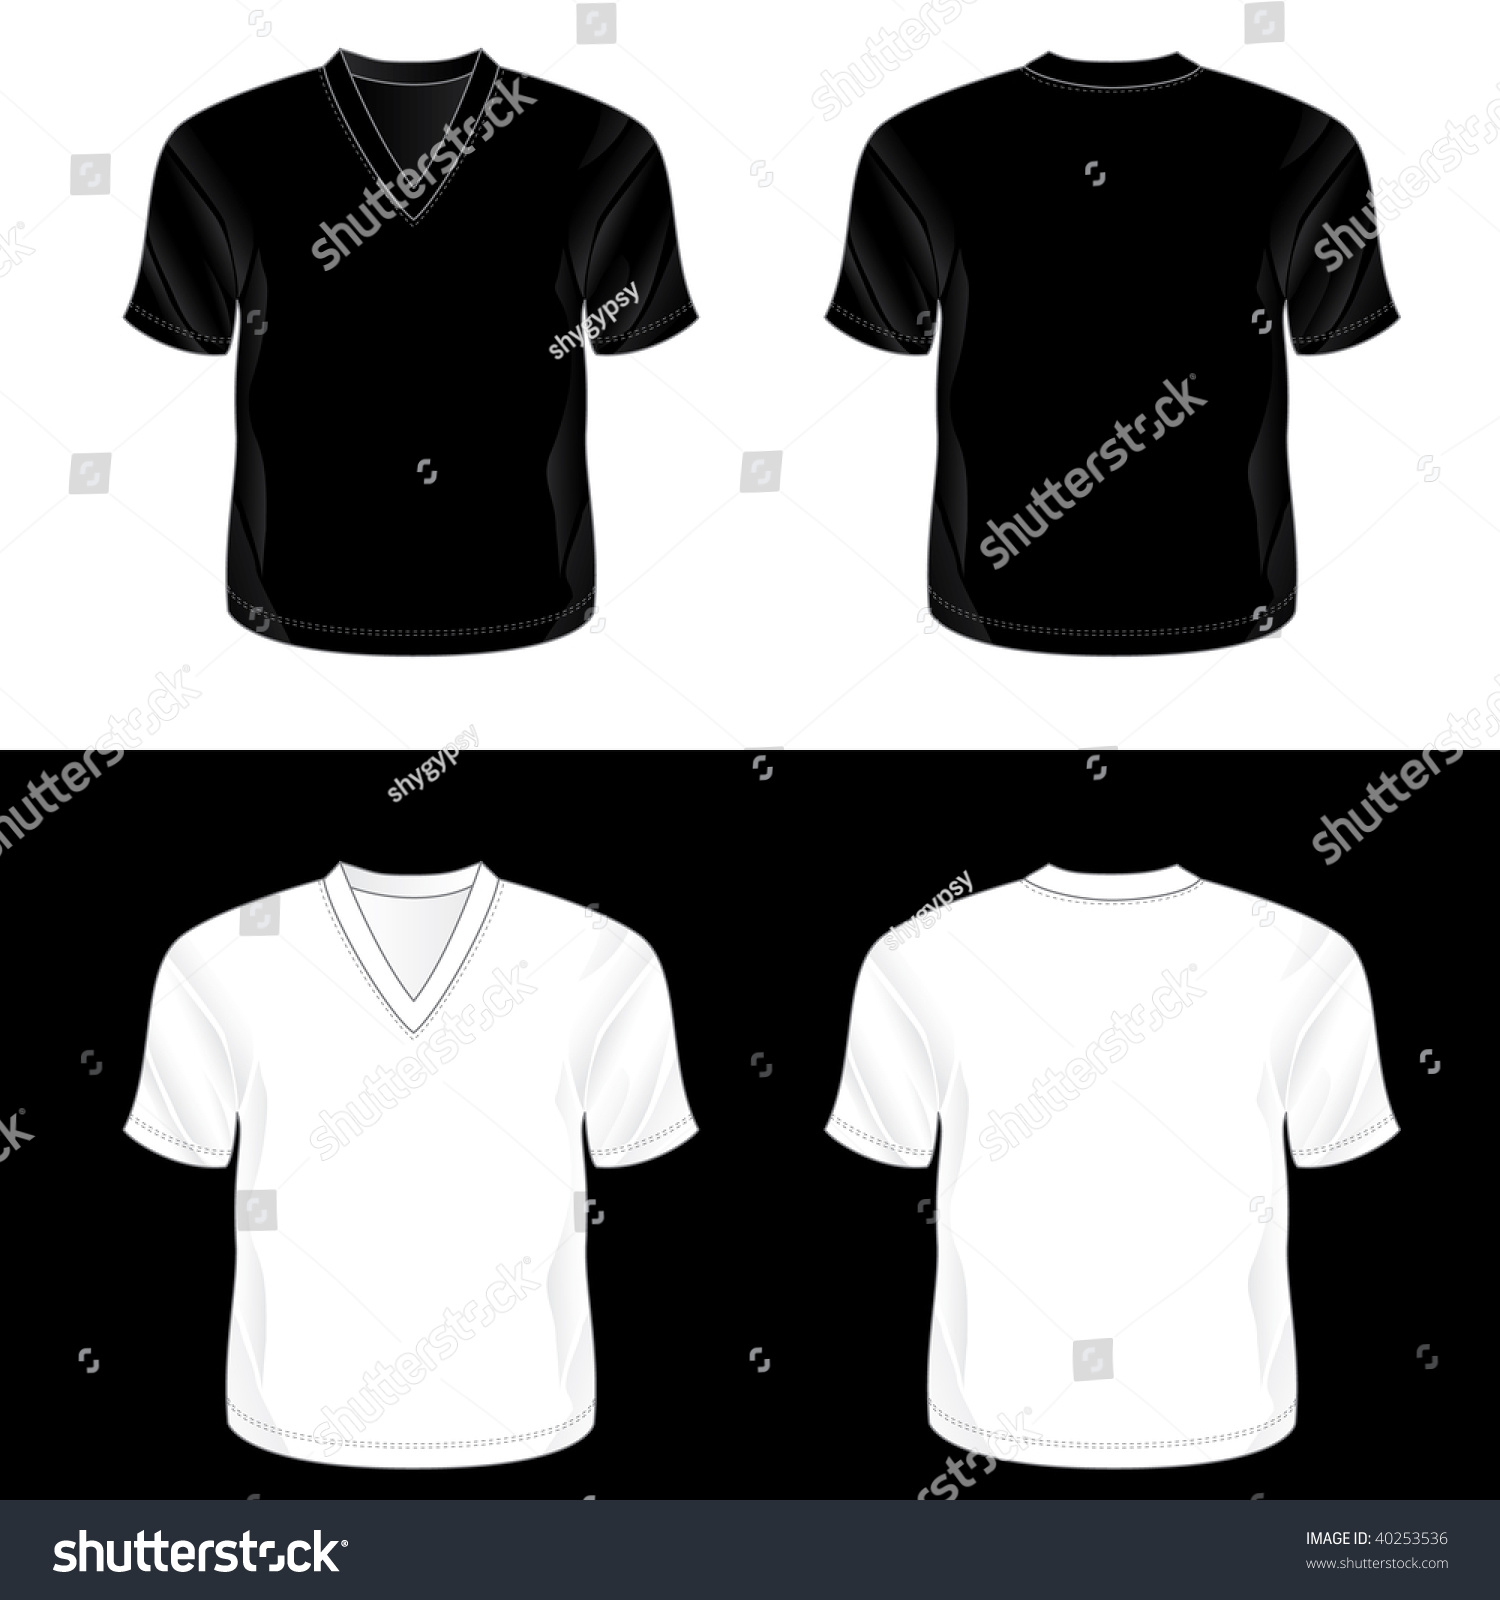 Blank black t shirt front and back - Black And White Realistic Blank V Neck T Shirt Templates